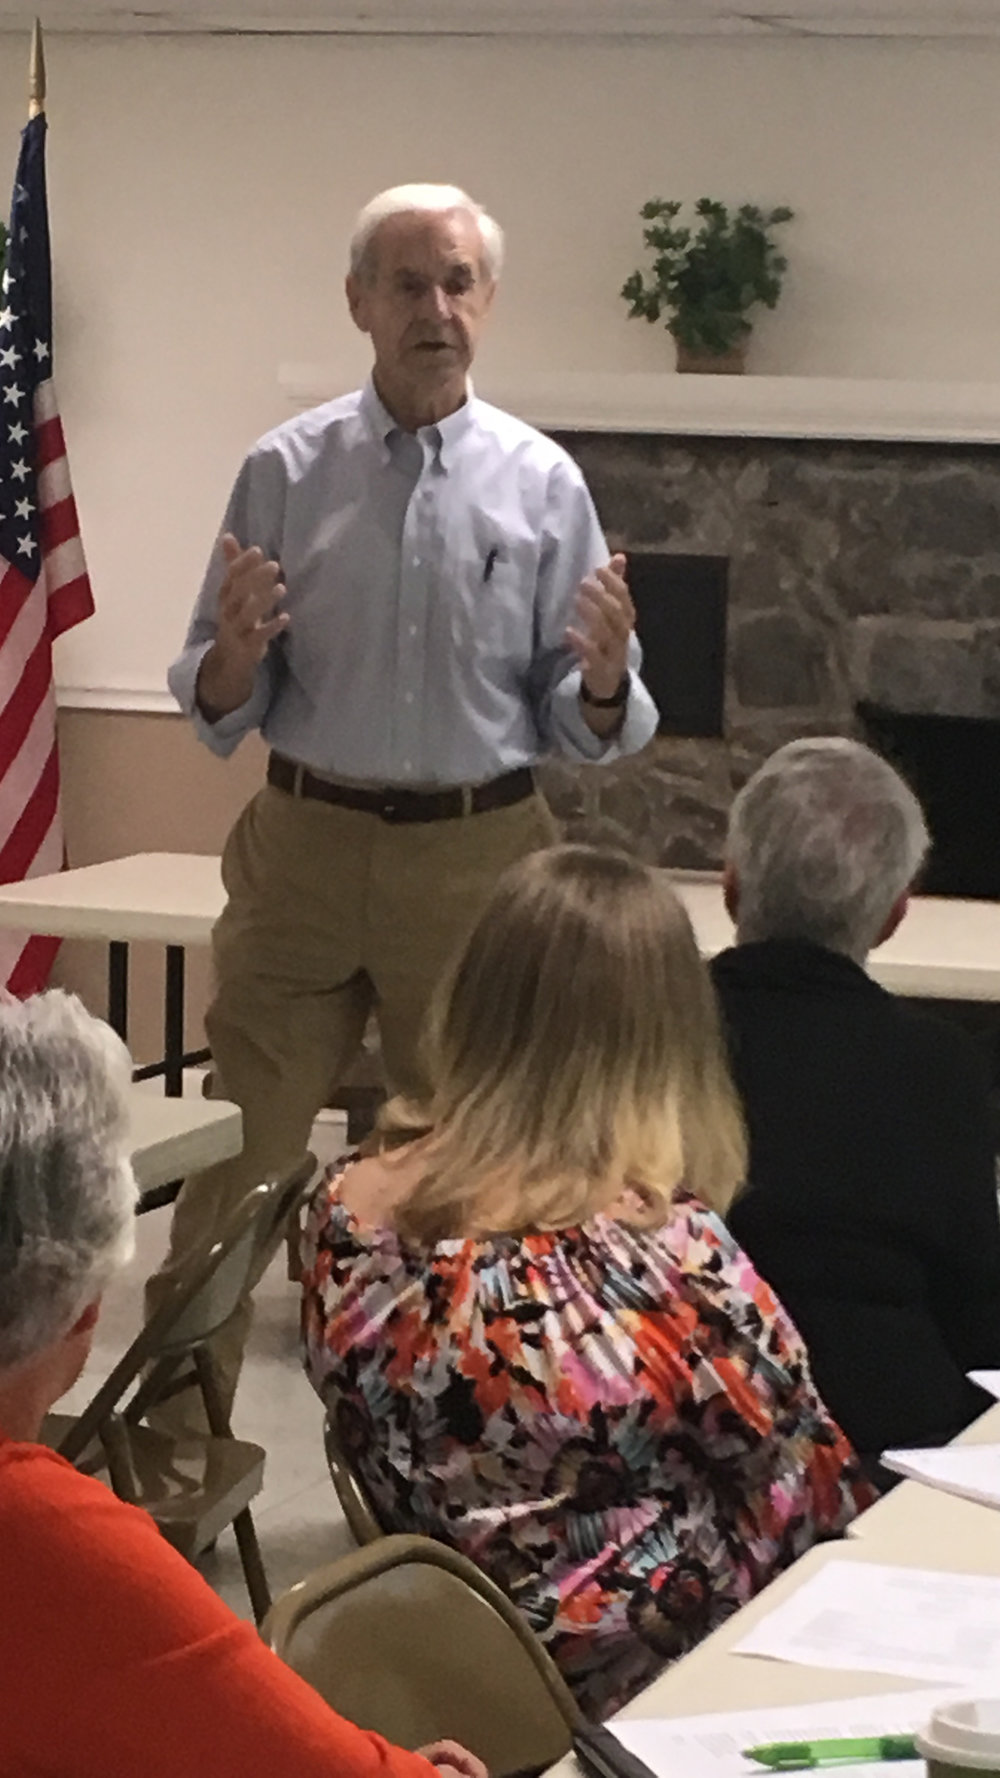 Rep. Kenny Imes of Murray presents his position on pension concerns at the District 1 RTA meeting in Murray on October 6th.